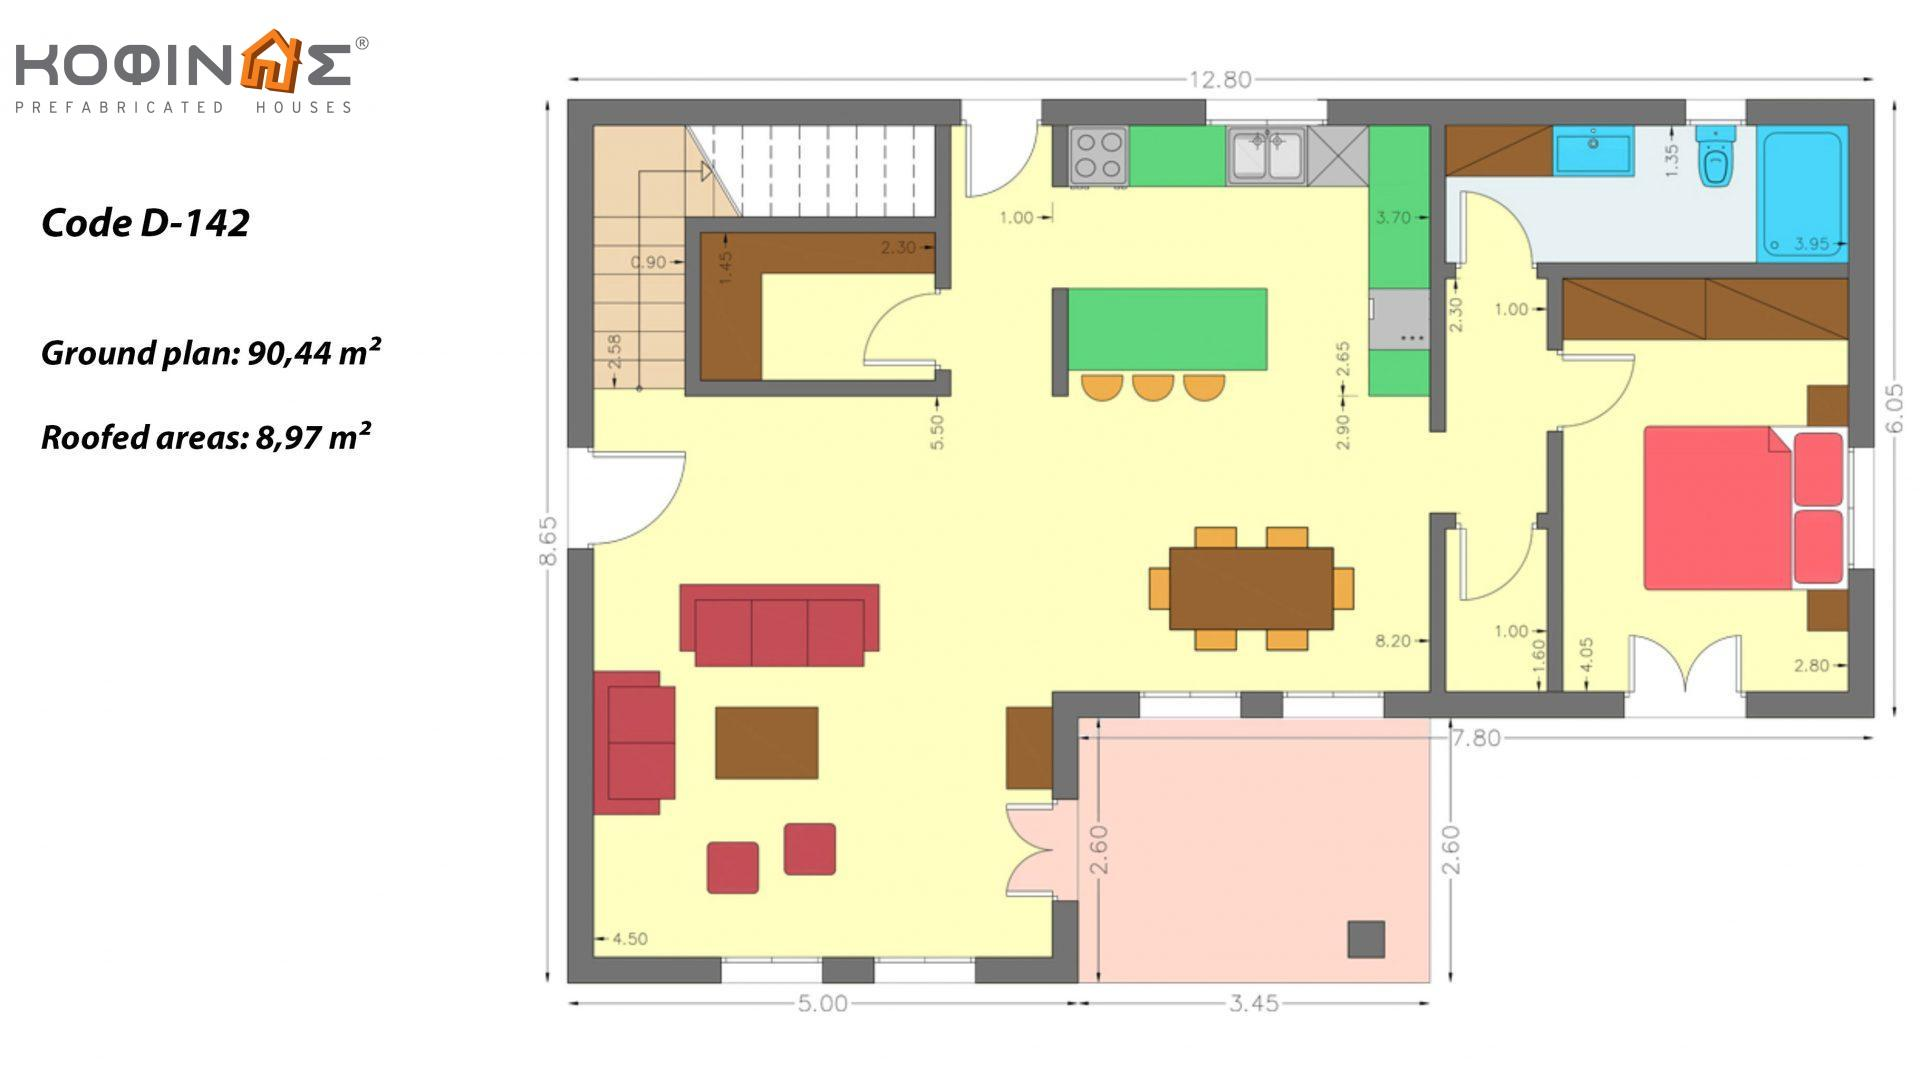 2-story house D-142, total surface of 142,47 m²,roofed areas 8,97 m²,balconies 38,41 m²